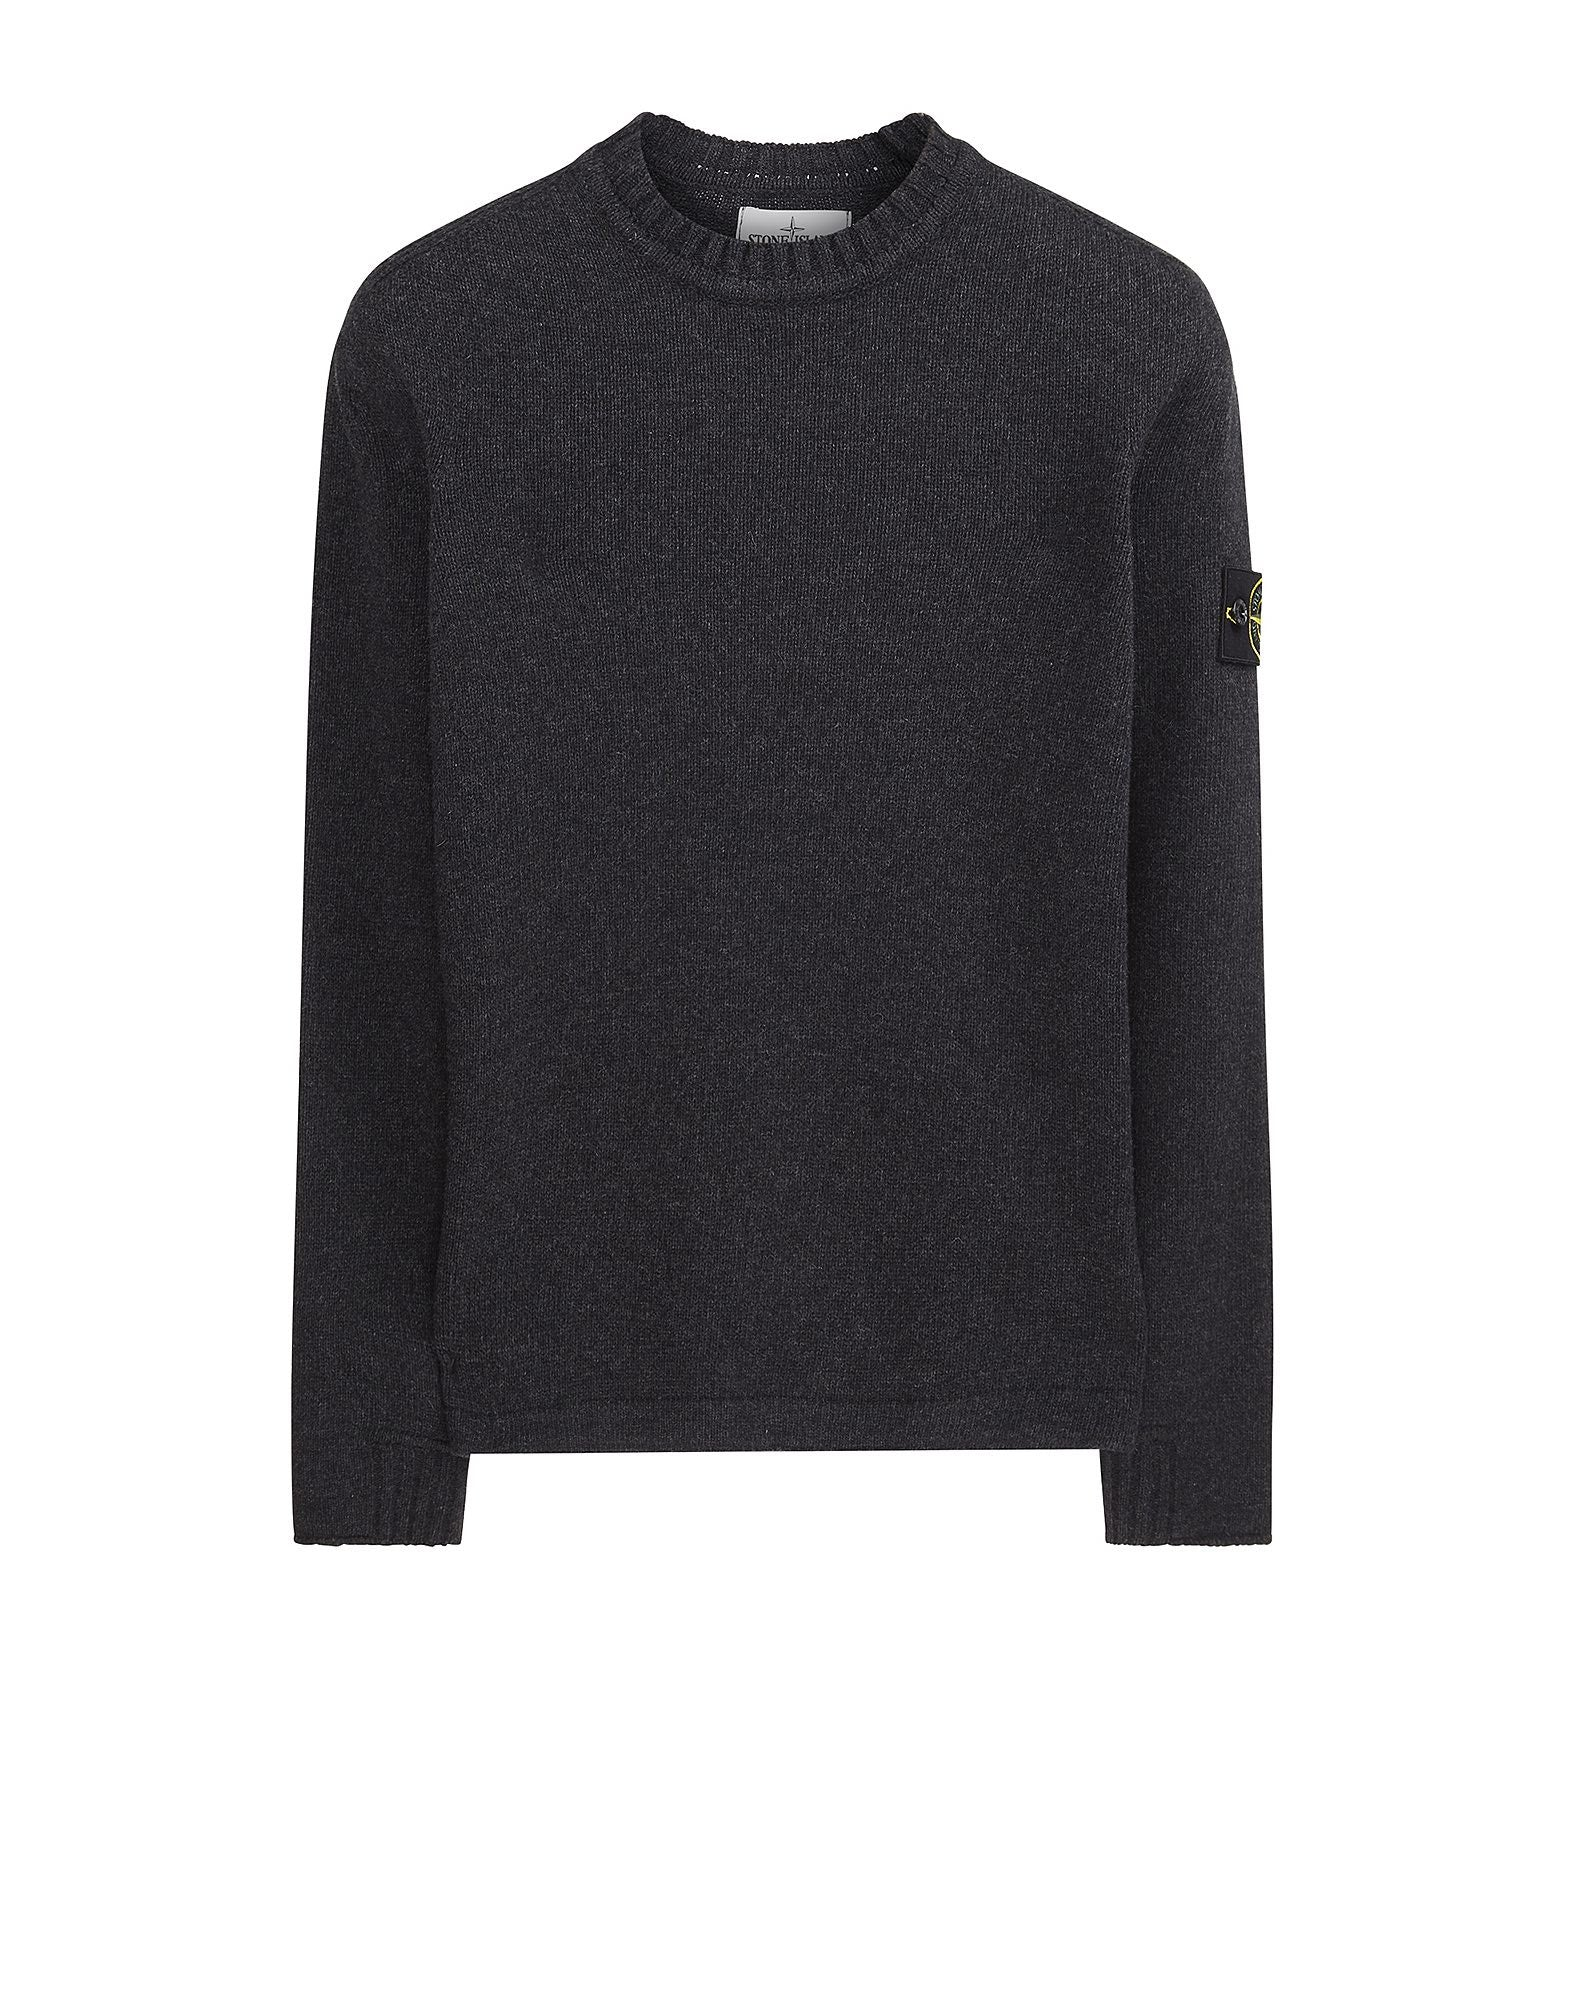 503A3 Lambswool Crew Neck Sweatshirt in Grey